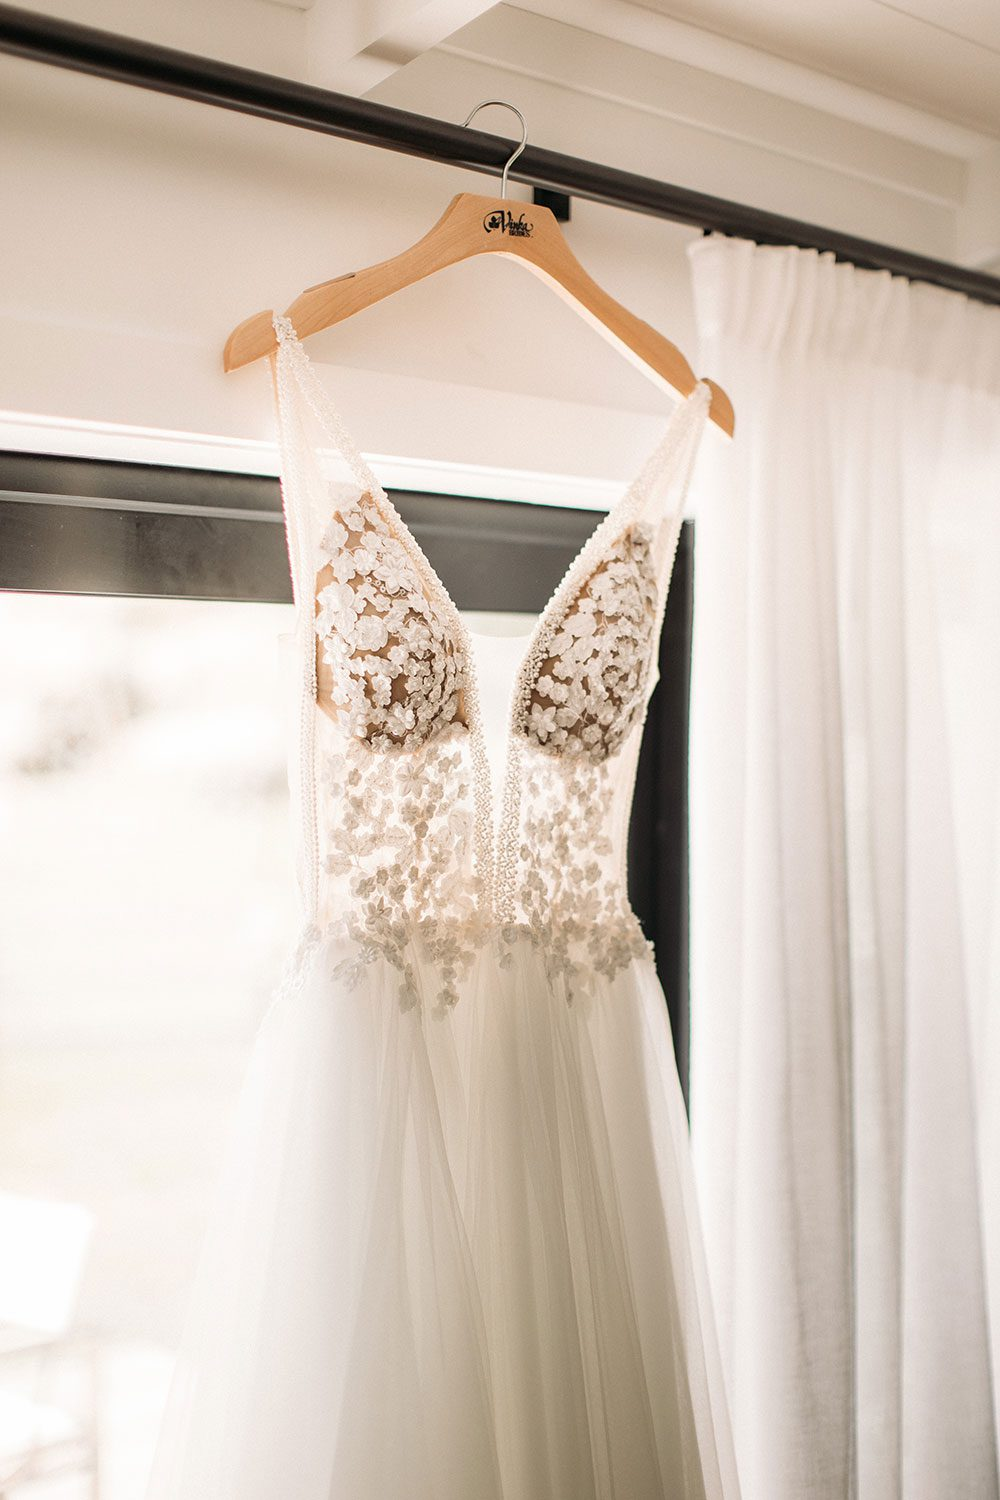 Vinka bridal boutique Isabelle tulle gown with sheer v neck bodice and beaded lace - hanging in window